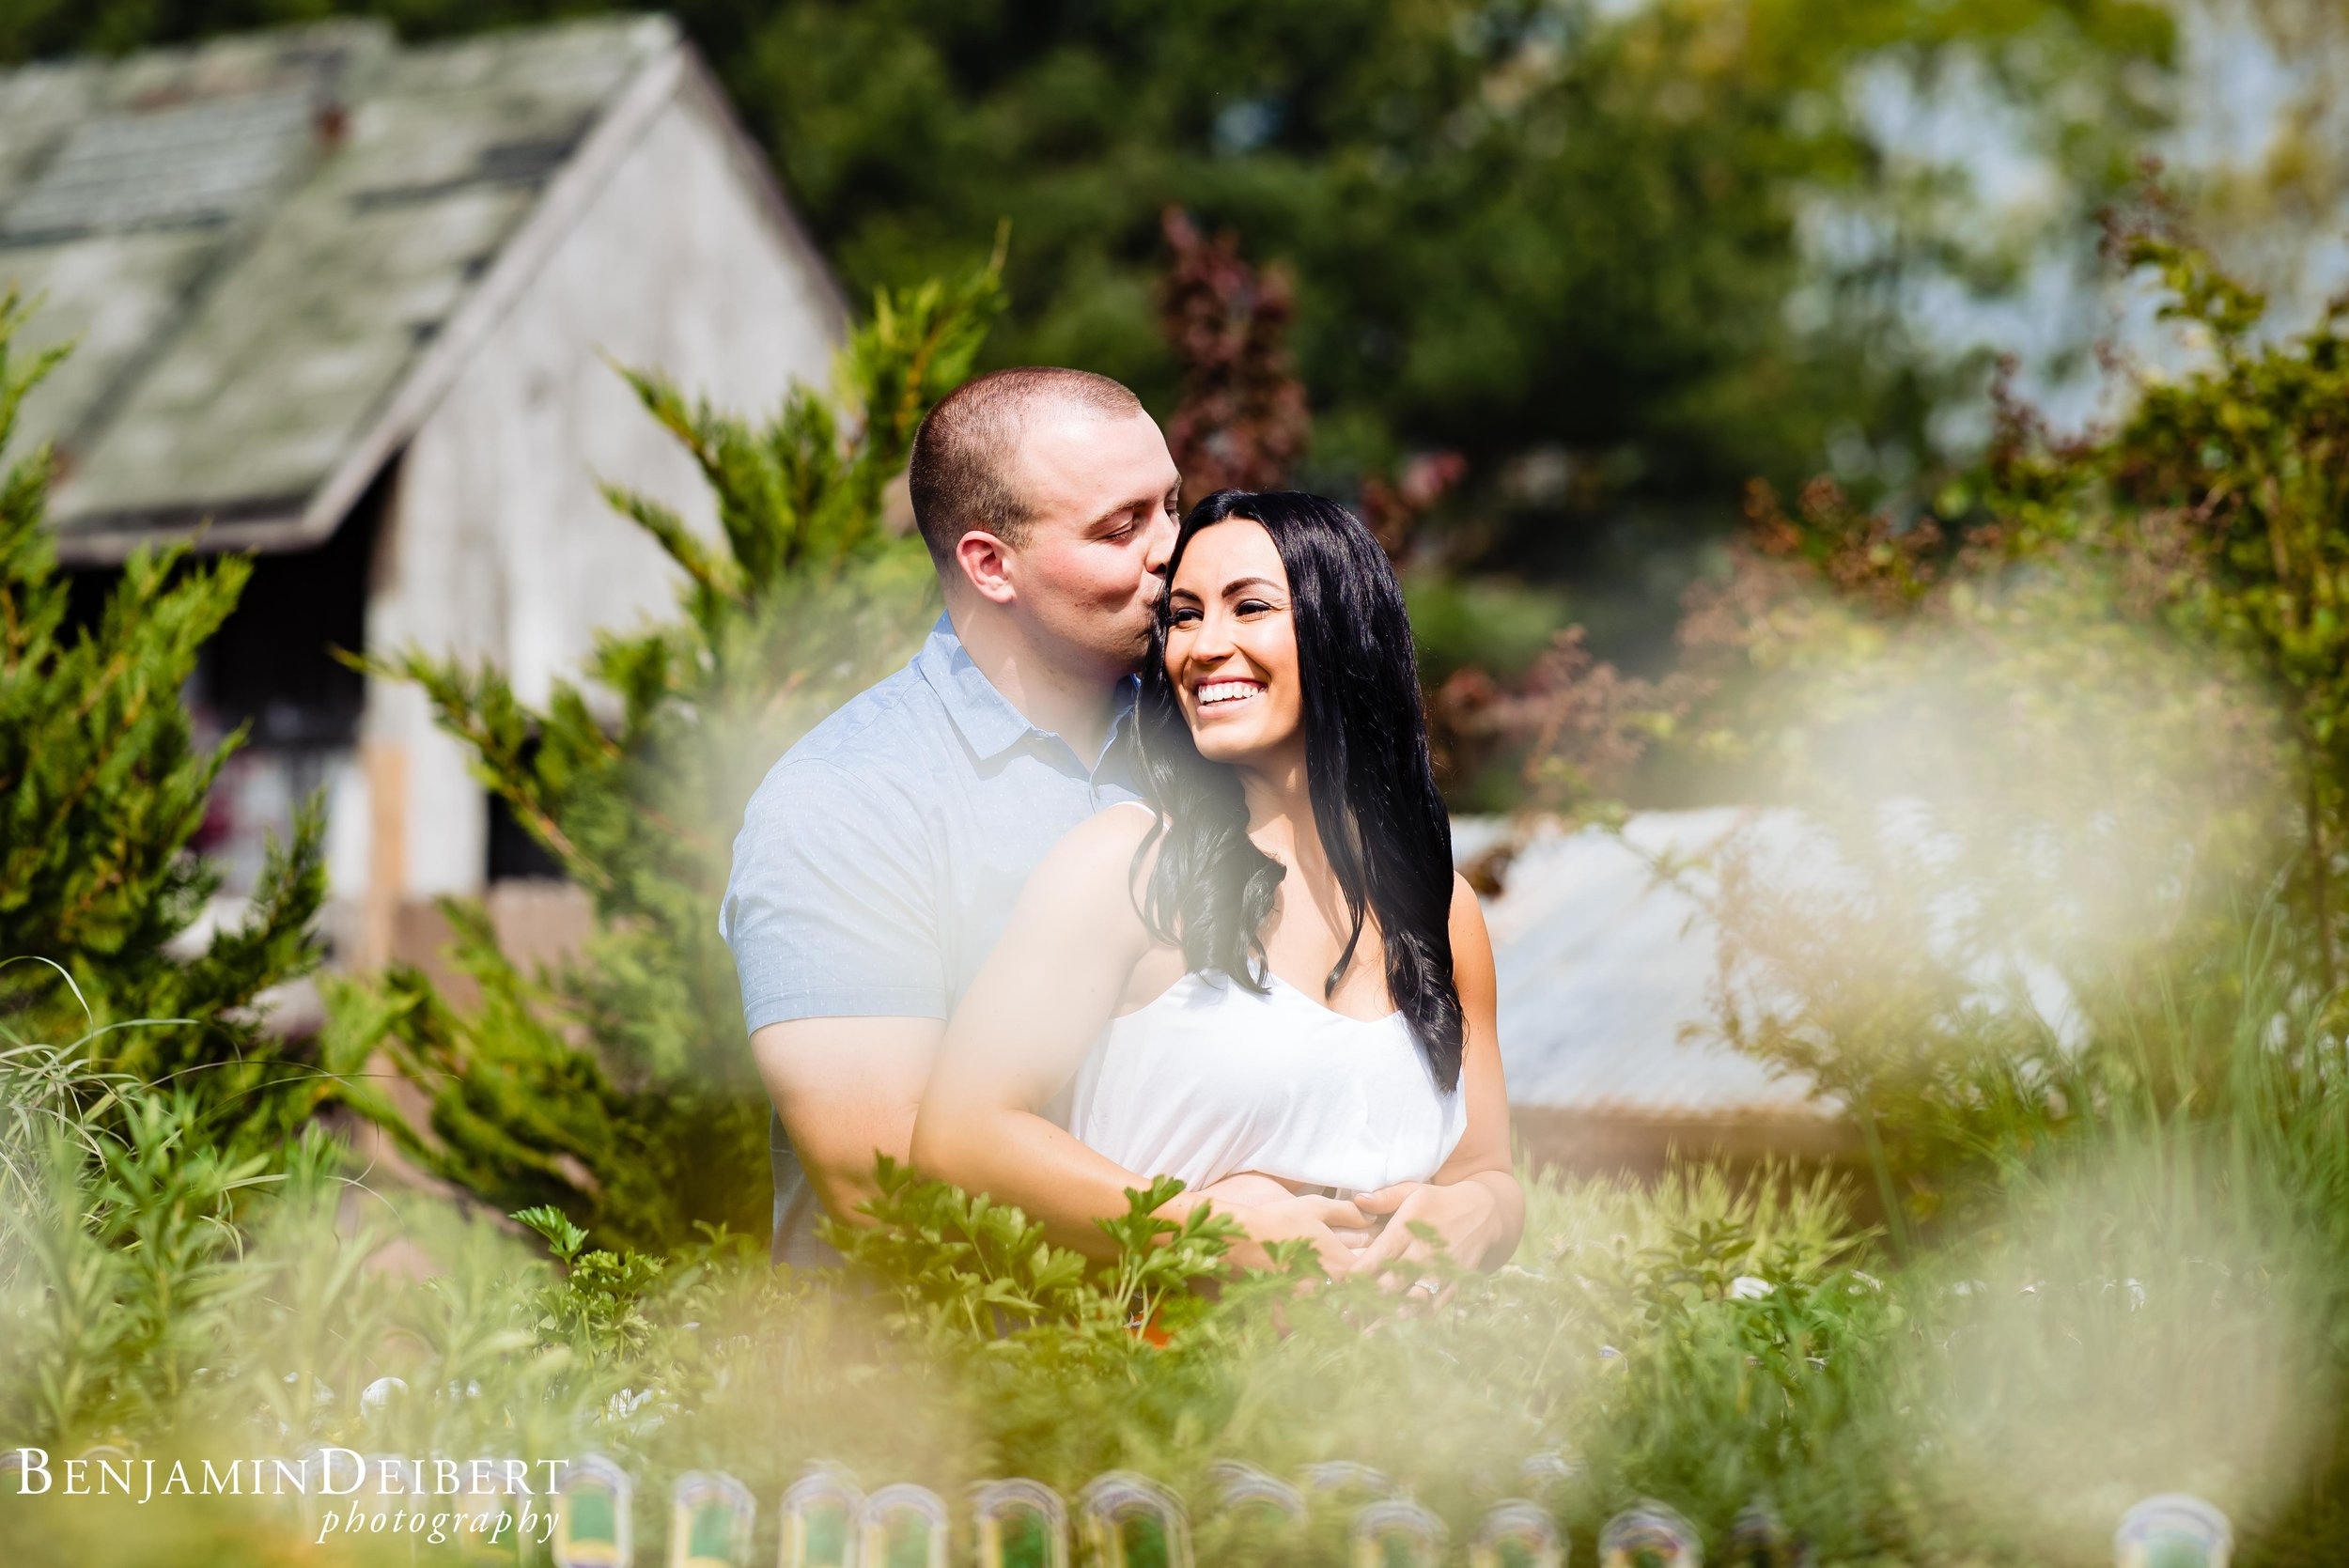 Kaitlyn and Matt_Bast Brothers Garden Center_Engagement-27.jpg